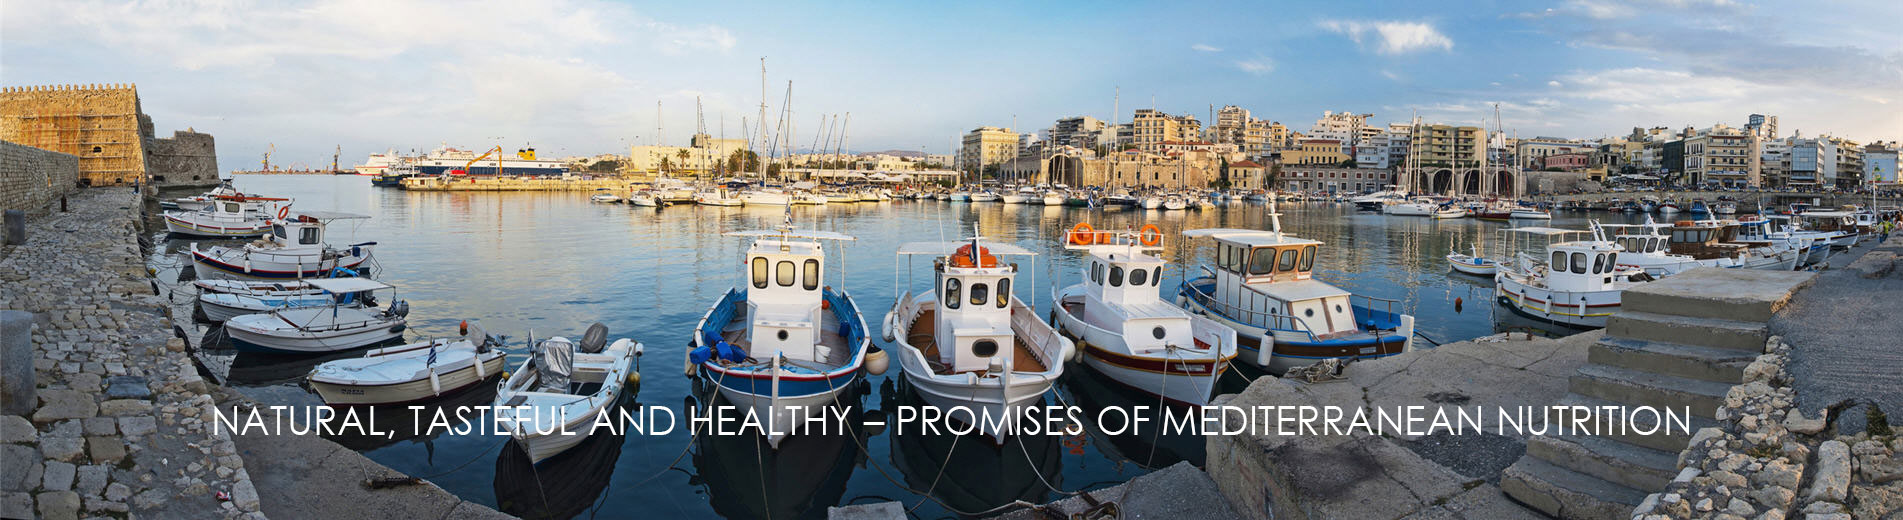 NATURAL, TASTEFUL AND HEALTHY – PROMISES OF MEDITERRANEAN NUTRITION